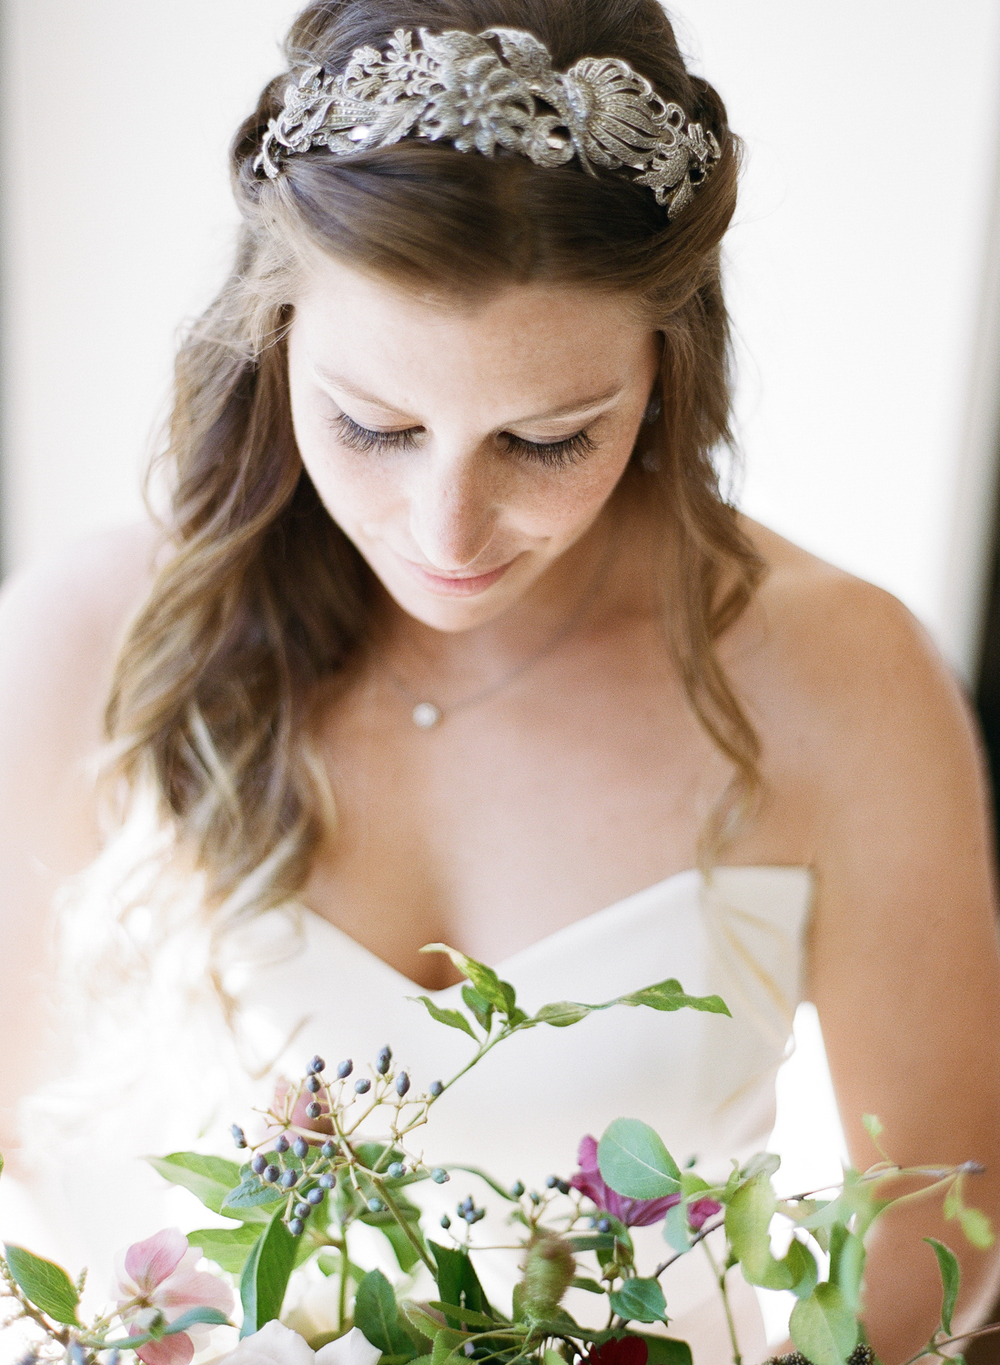 The bride gazes down at her eclectic bouquet, wearing a gorgeous bohemian metallic headpiece